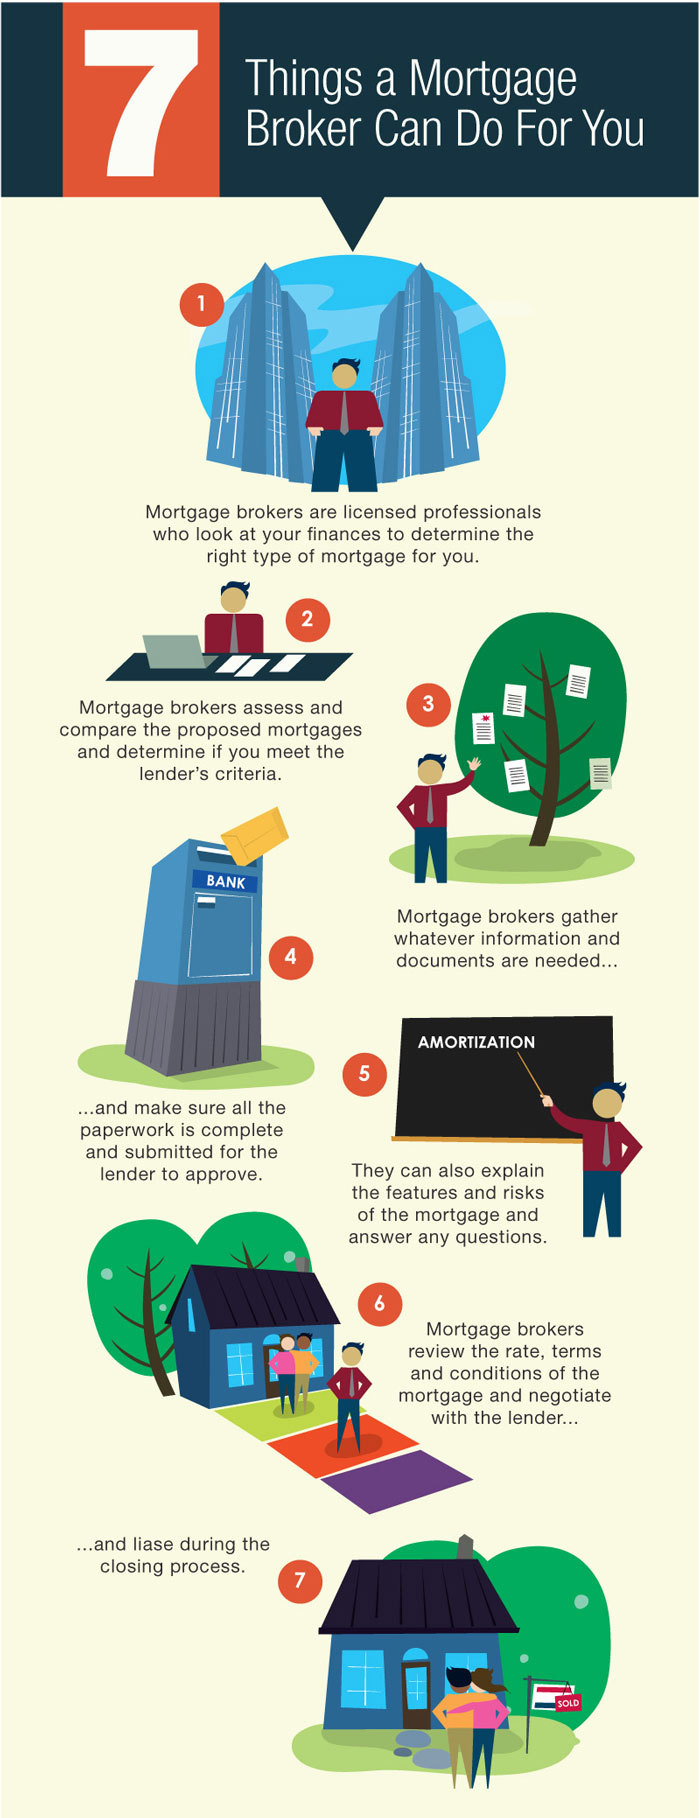 7 Things a Mortgage Broker Can Do For You